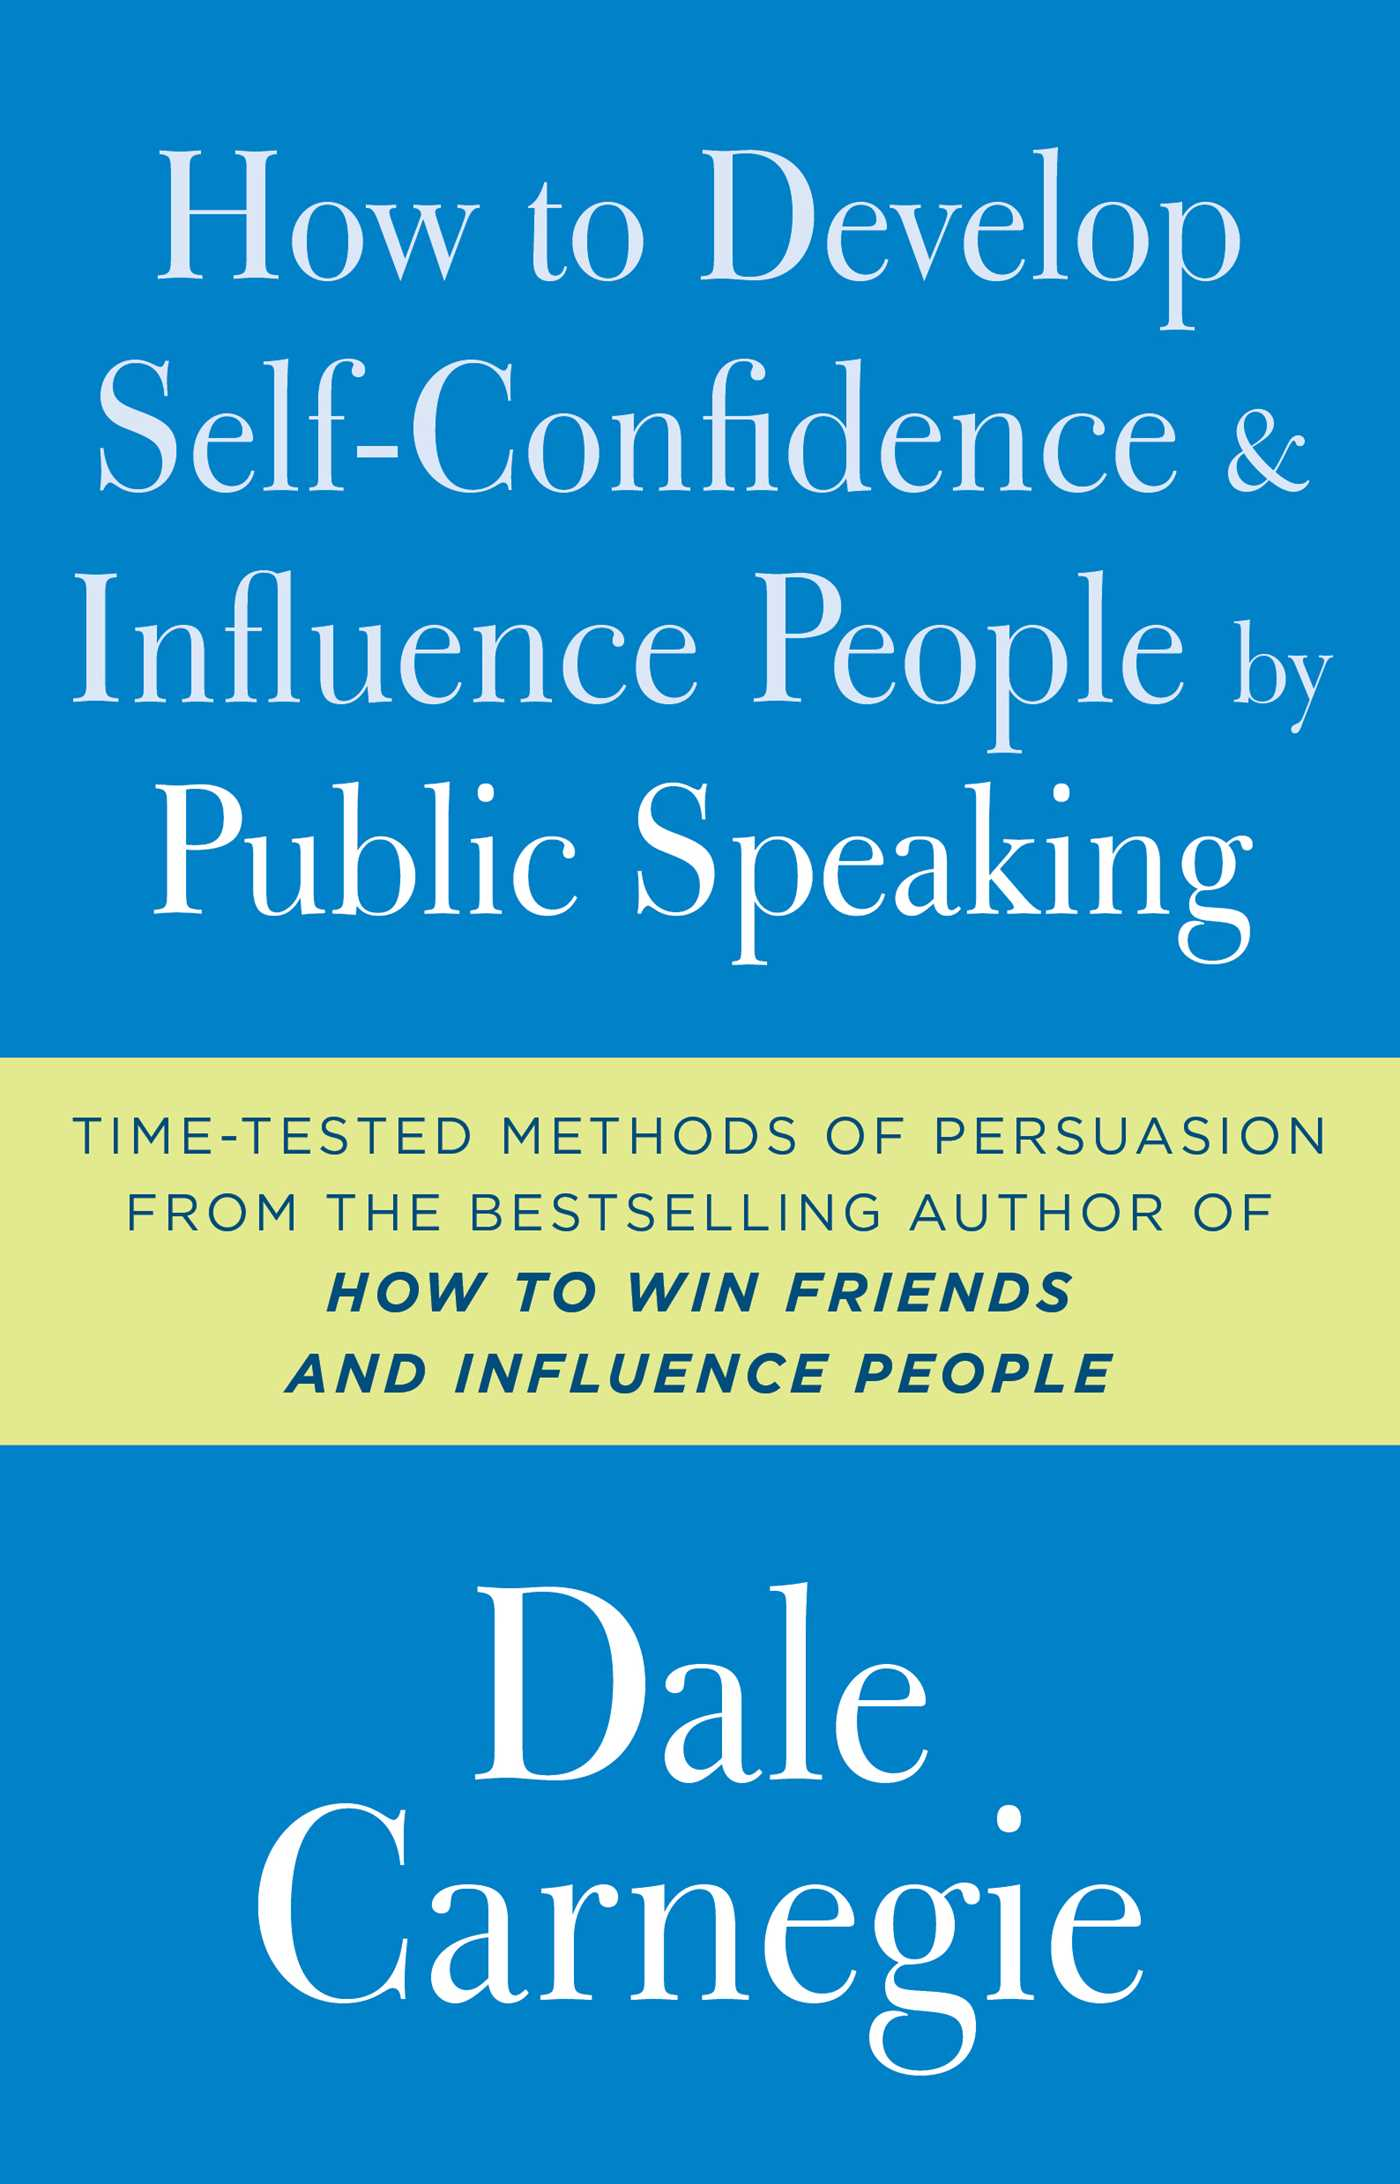 How To Develop Selfconfidence And Influence People By Public Speaking